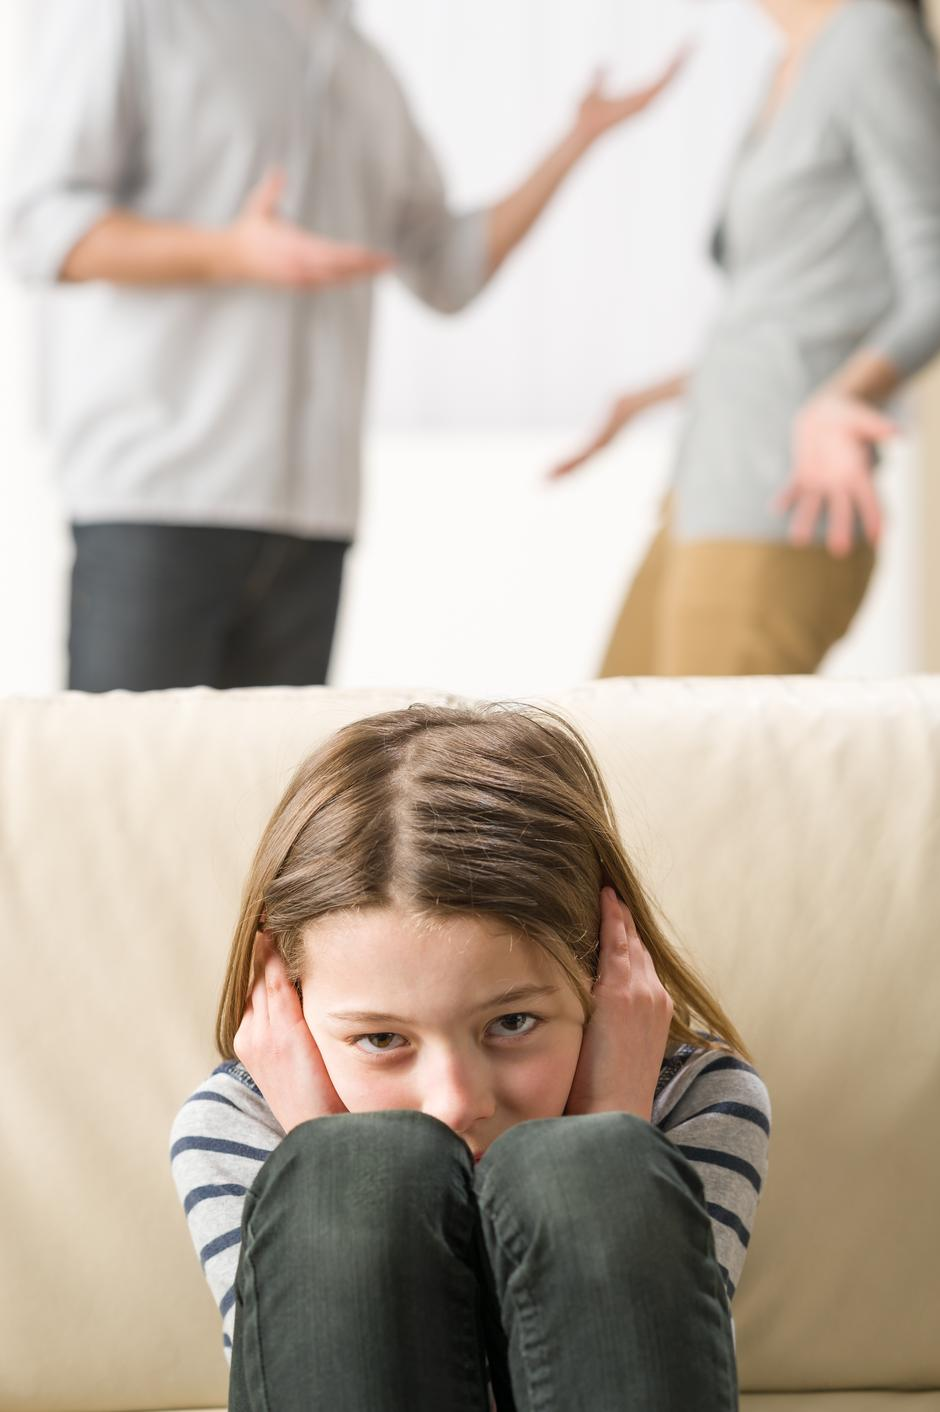 Little girl is troubled because parents arguing | Autor: J.M. Guyon - Copyright 2013